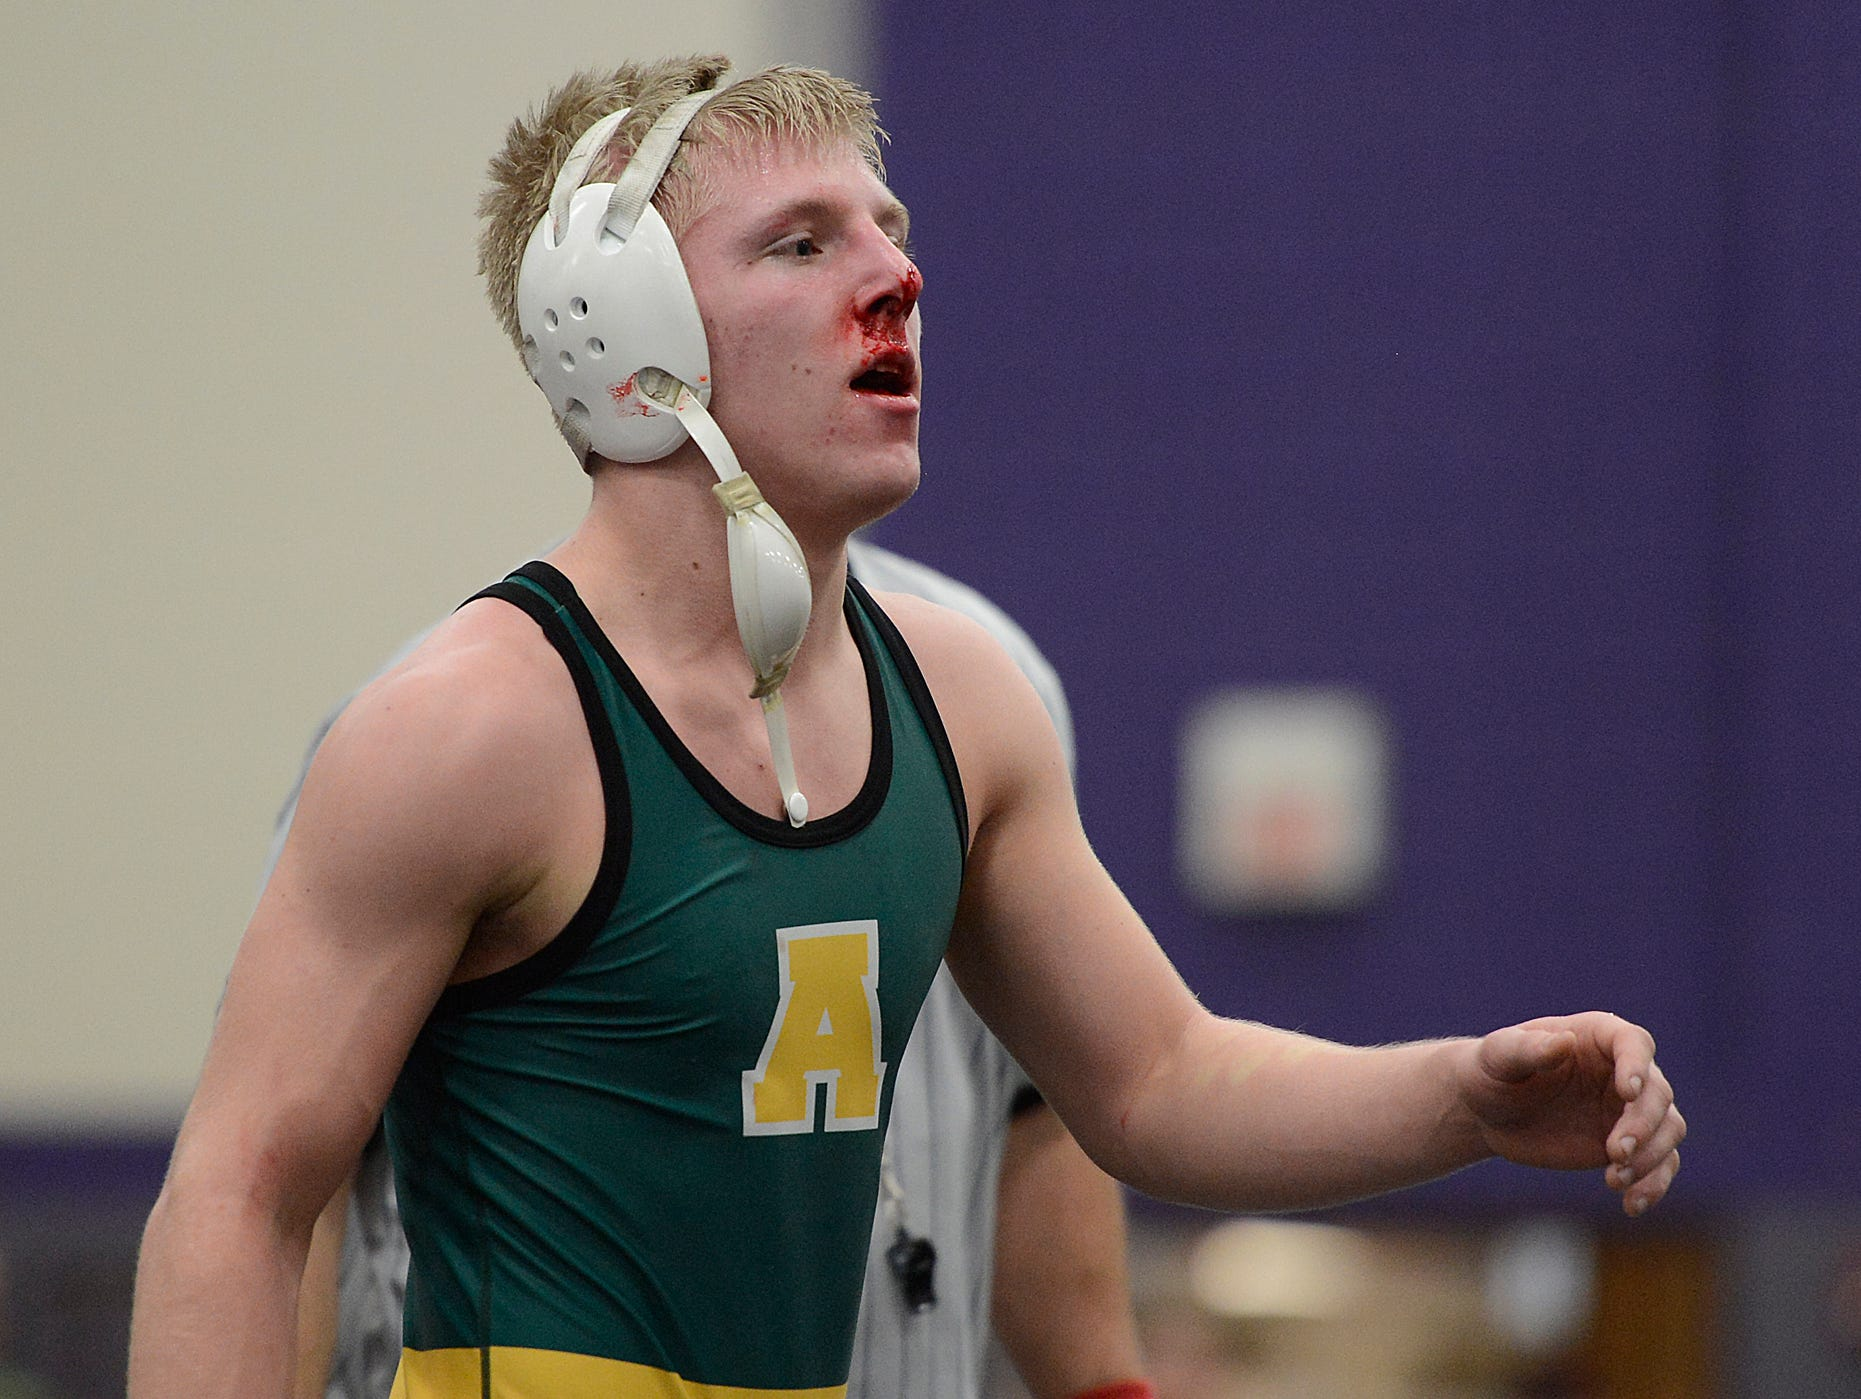 Ashwaubenon's Zac Benton walks off the mat with a bloody nose after defeating Pulaski's Jake Gille in the 138-pound championship match during Saturday's WIAA Division 1 wrestling sectionals at Green Bay West High School.